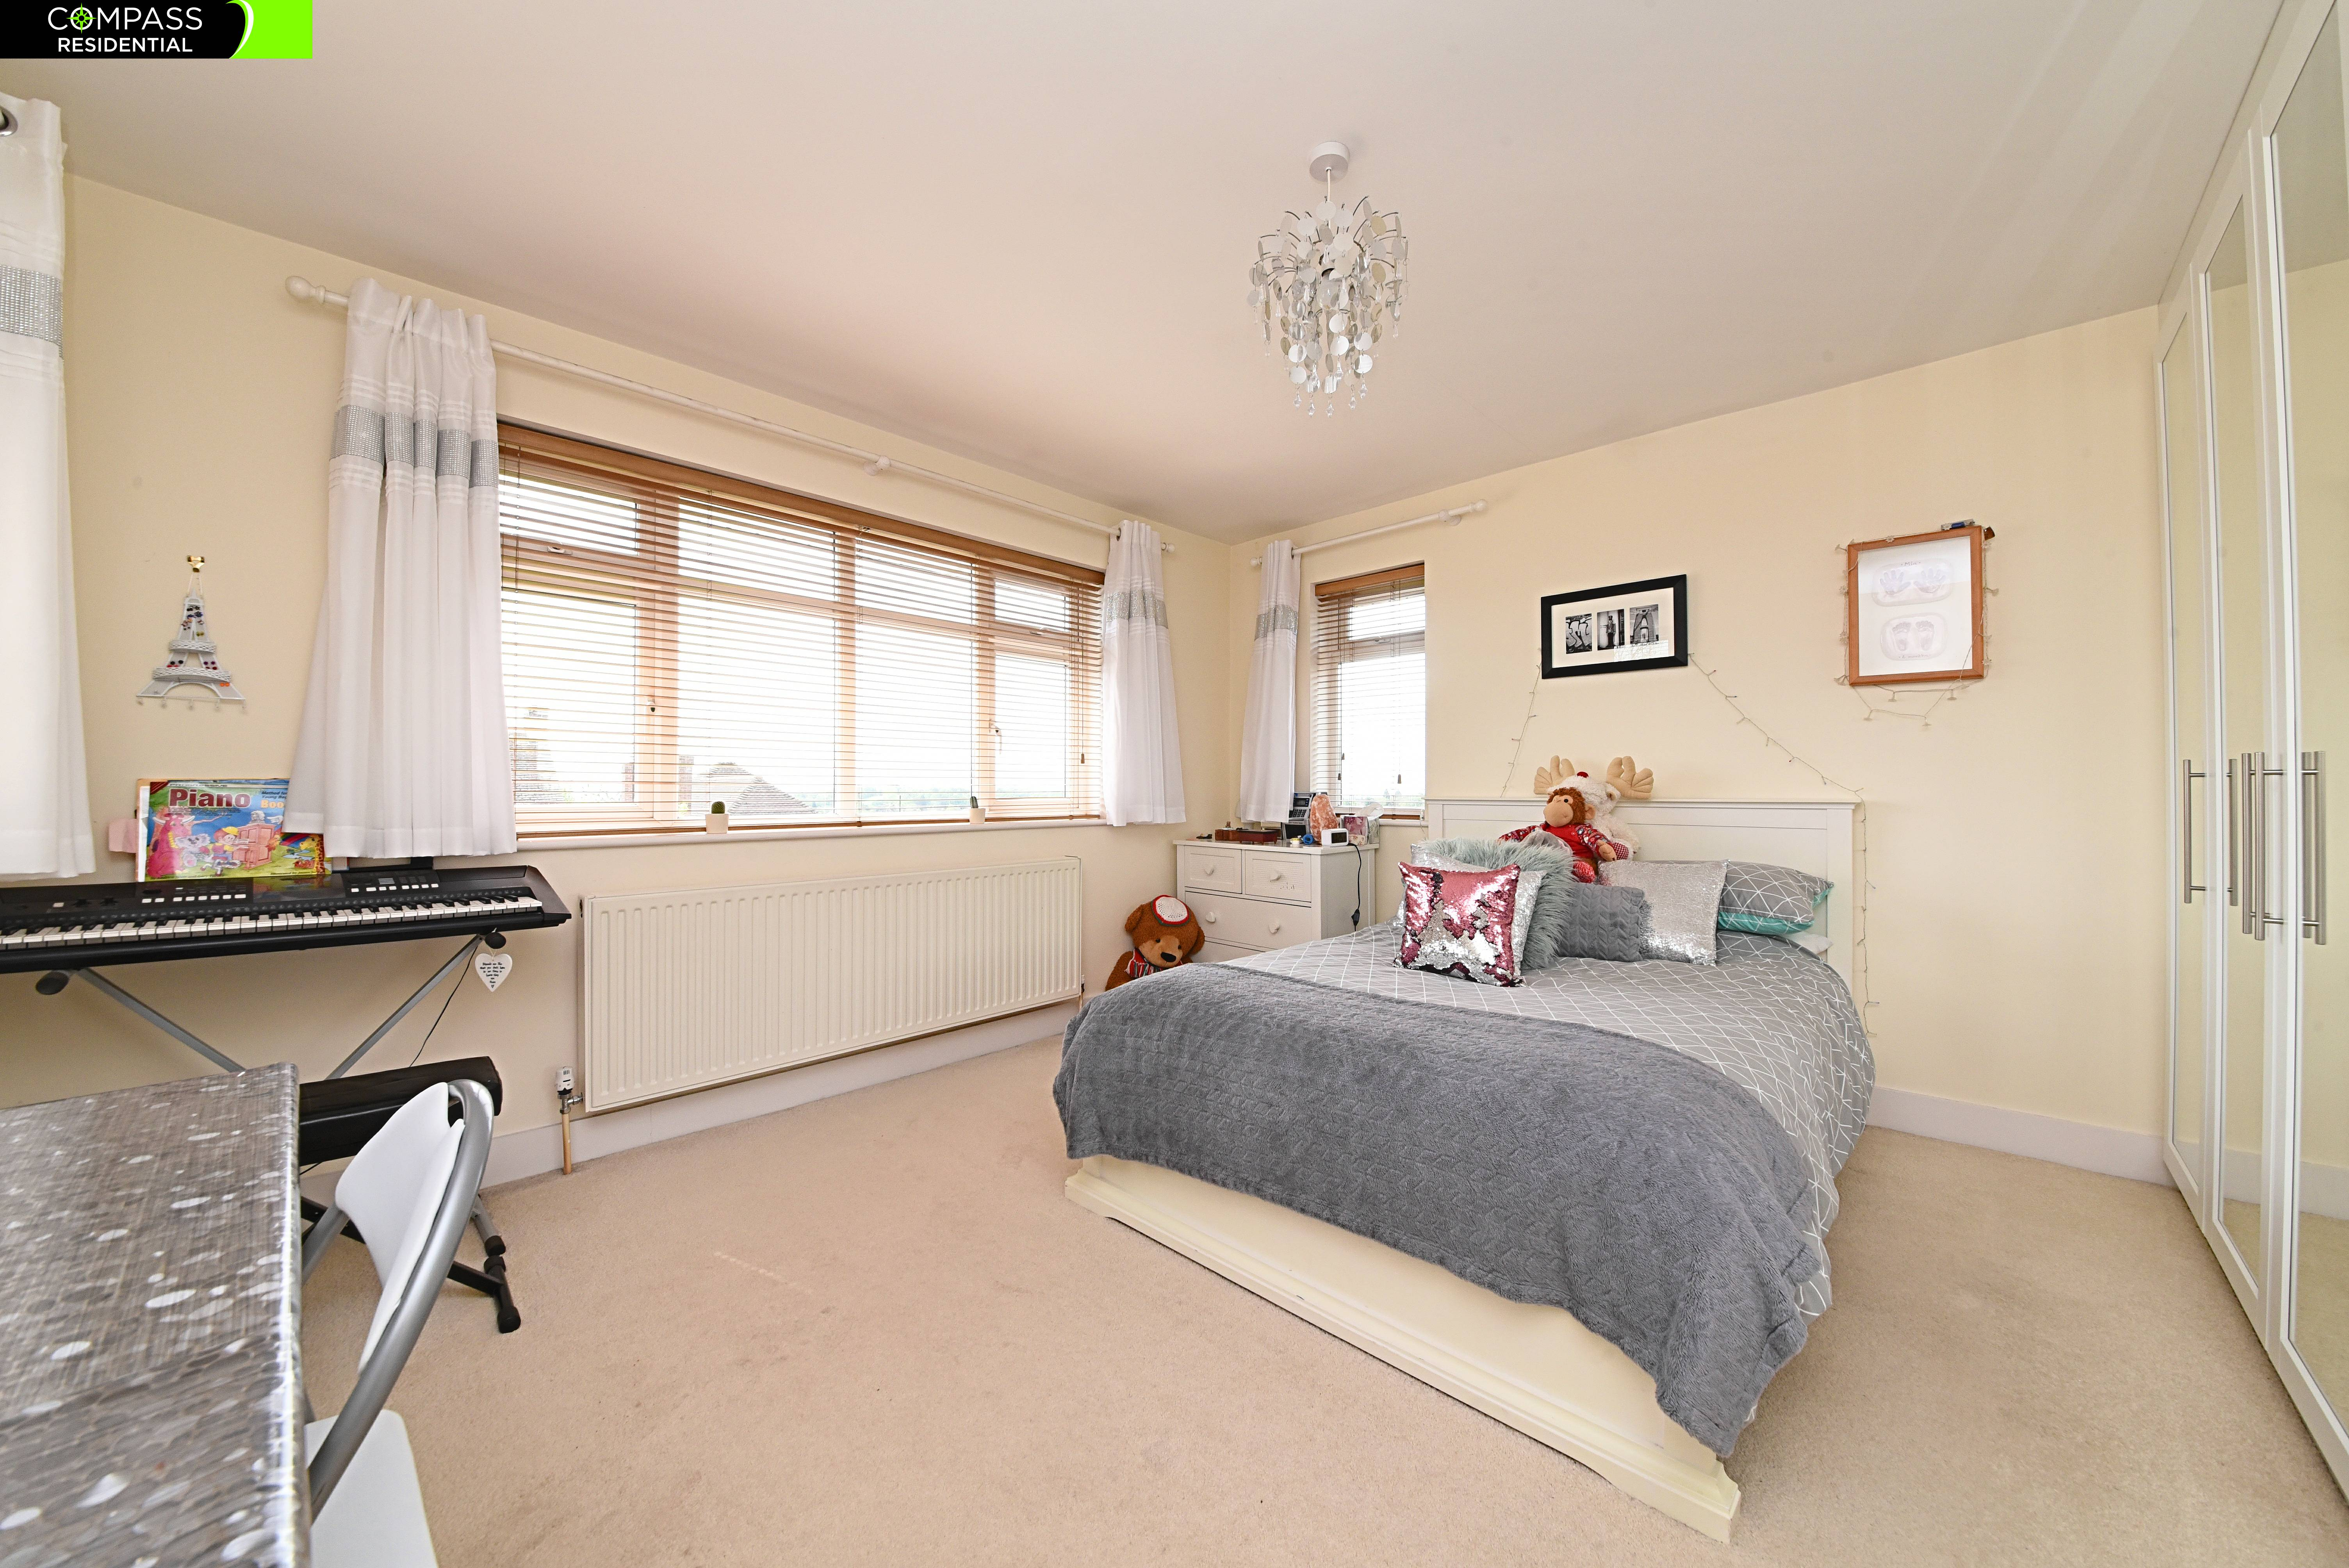 4 bed house for sale in Stanmore, HA7 3AZ  - Property Image 7